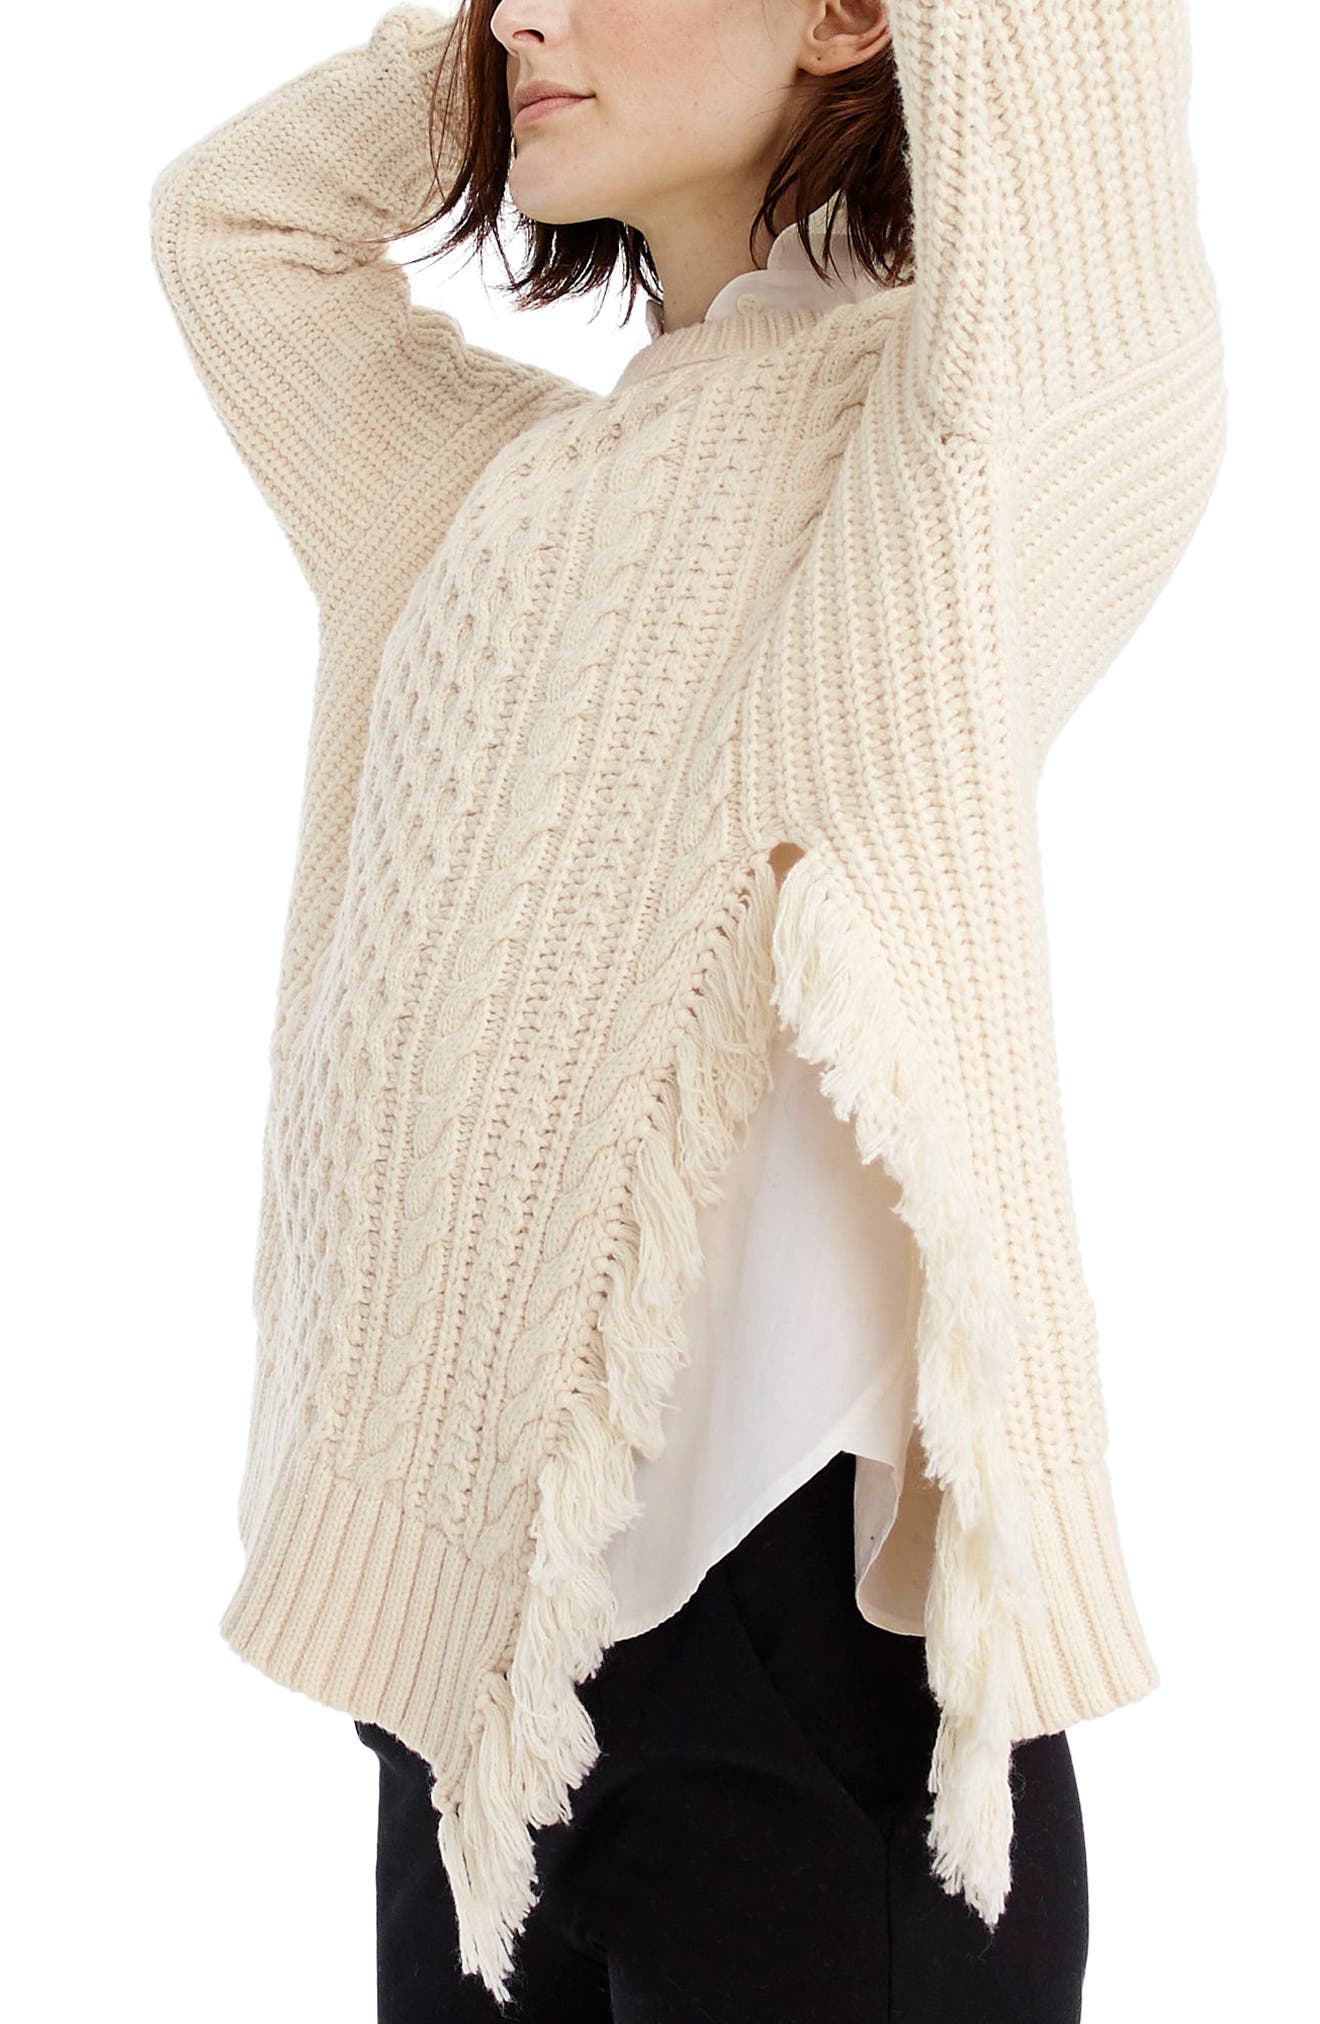 J.Crew Fringe Detail Cable Knit Sweater,                             Alternate thumbnail 3, color,                             Ivory